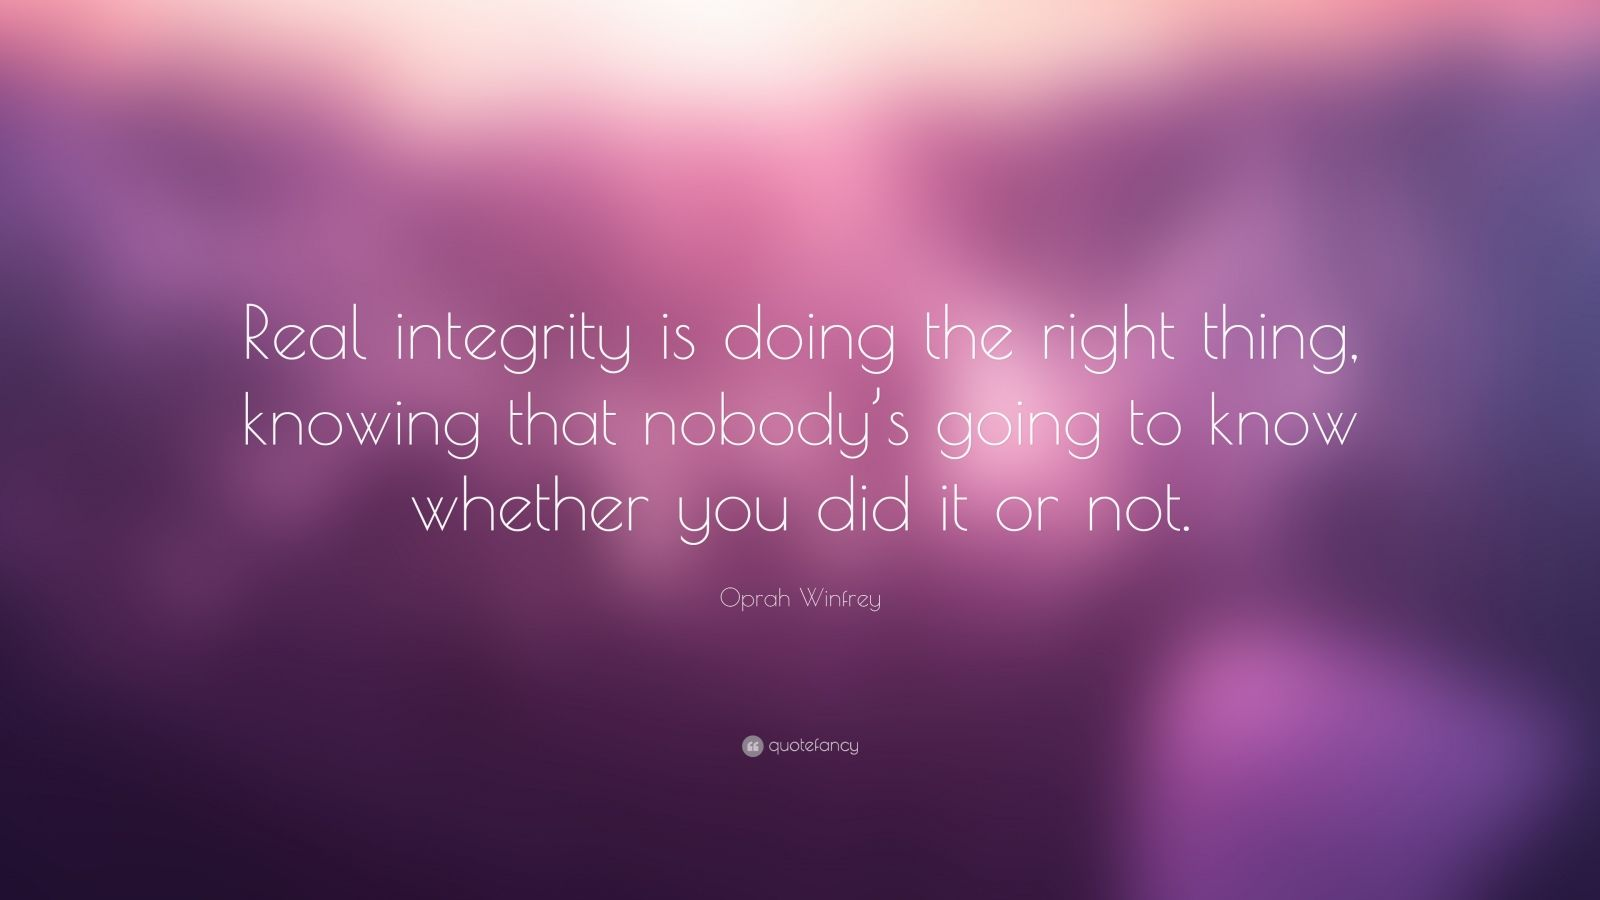 """Oprah Winfrey Quote: """"Real integrity is doing the right thing, knowing that nobody's going to know whether you did it or not."""""""